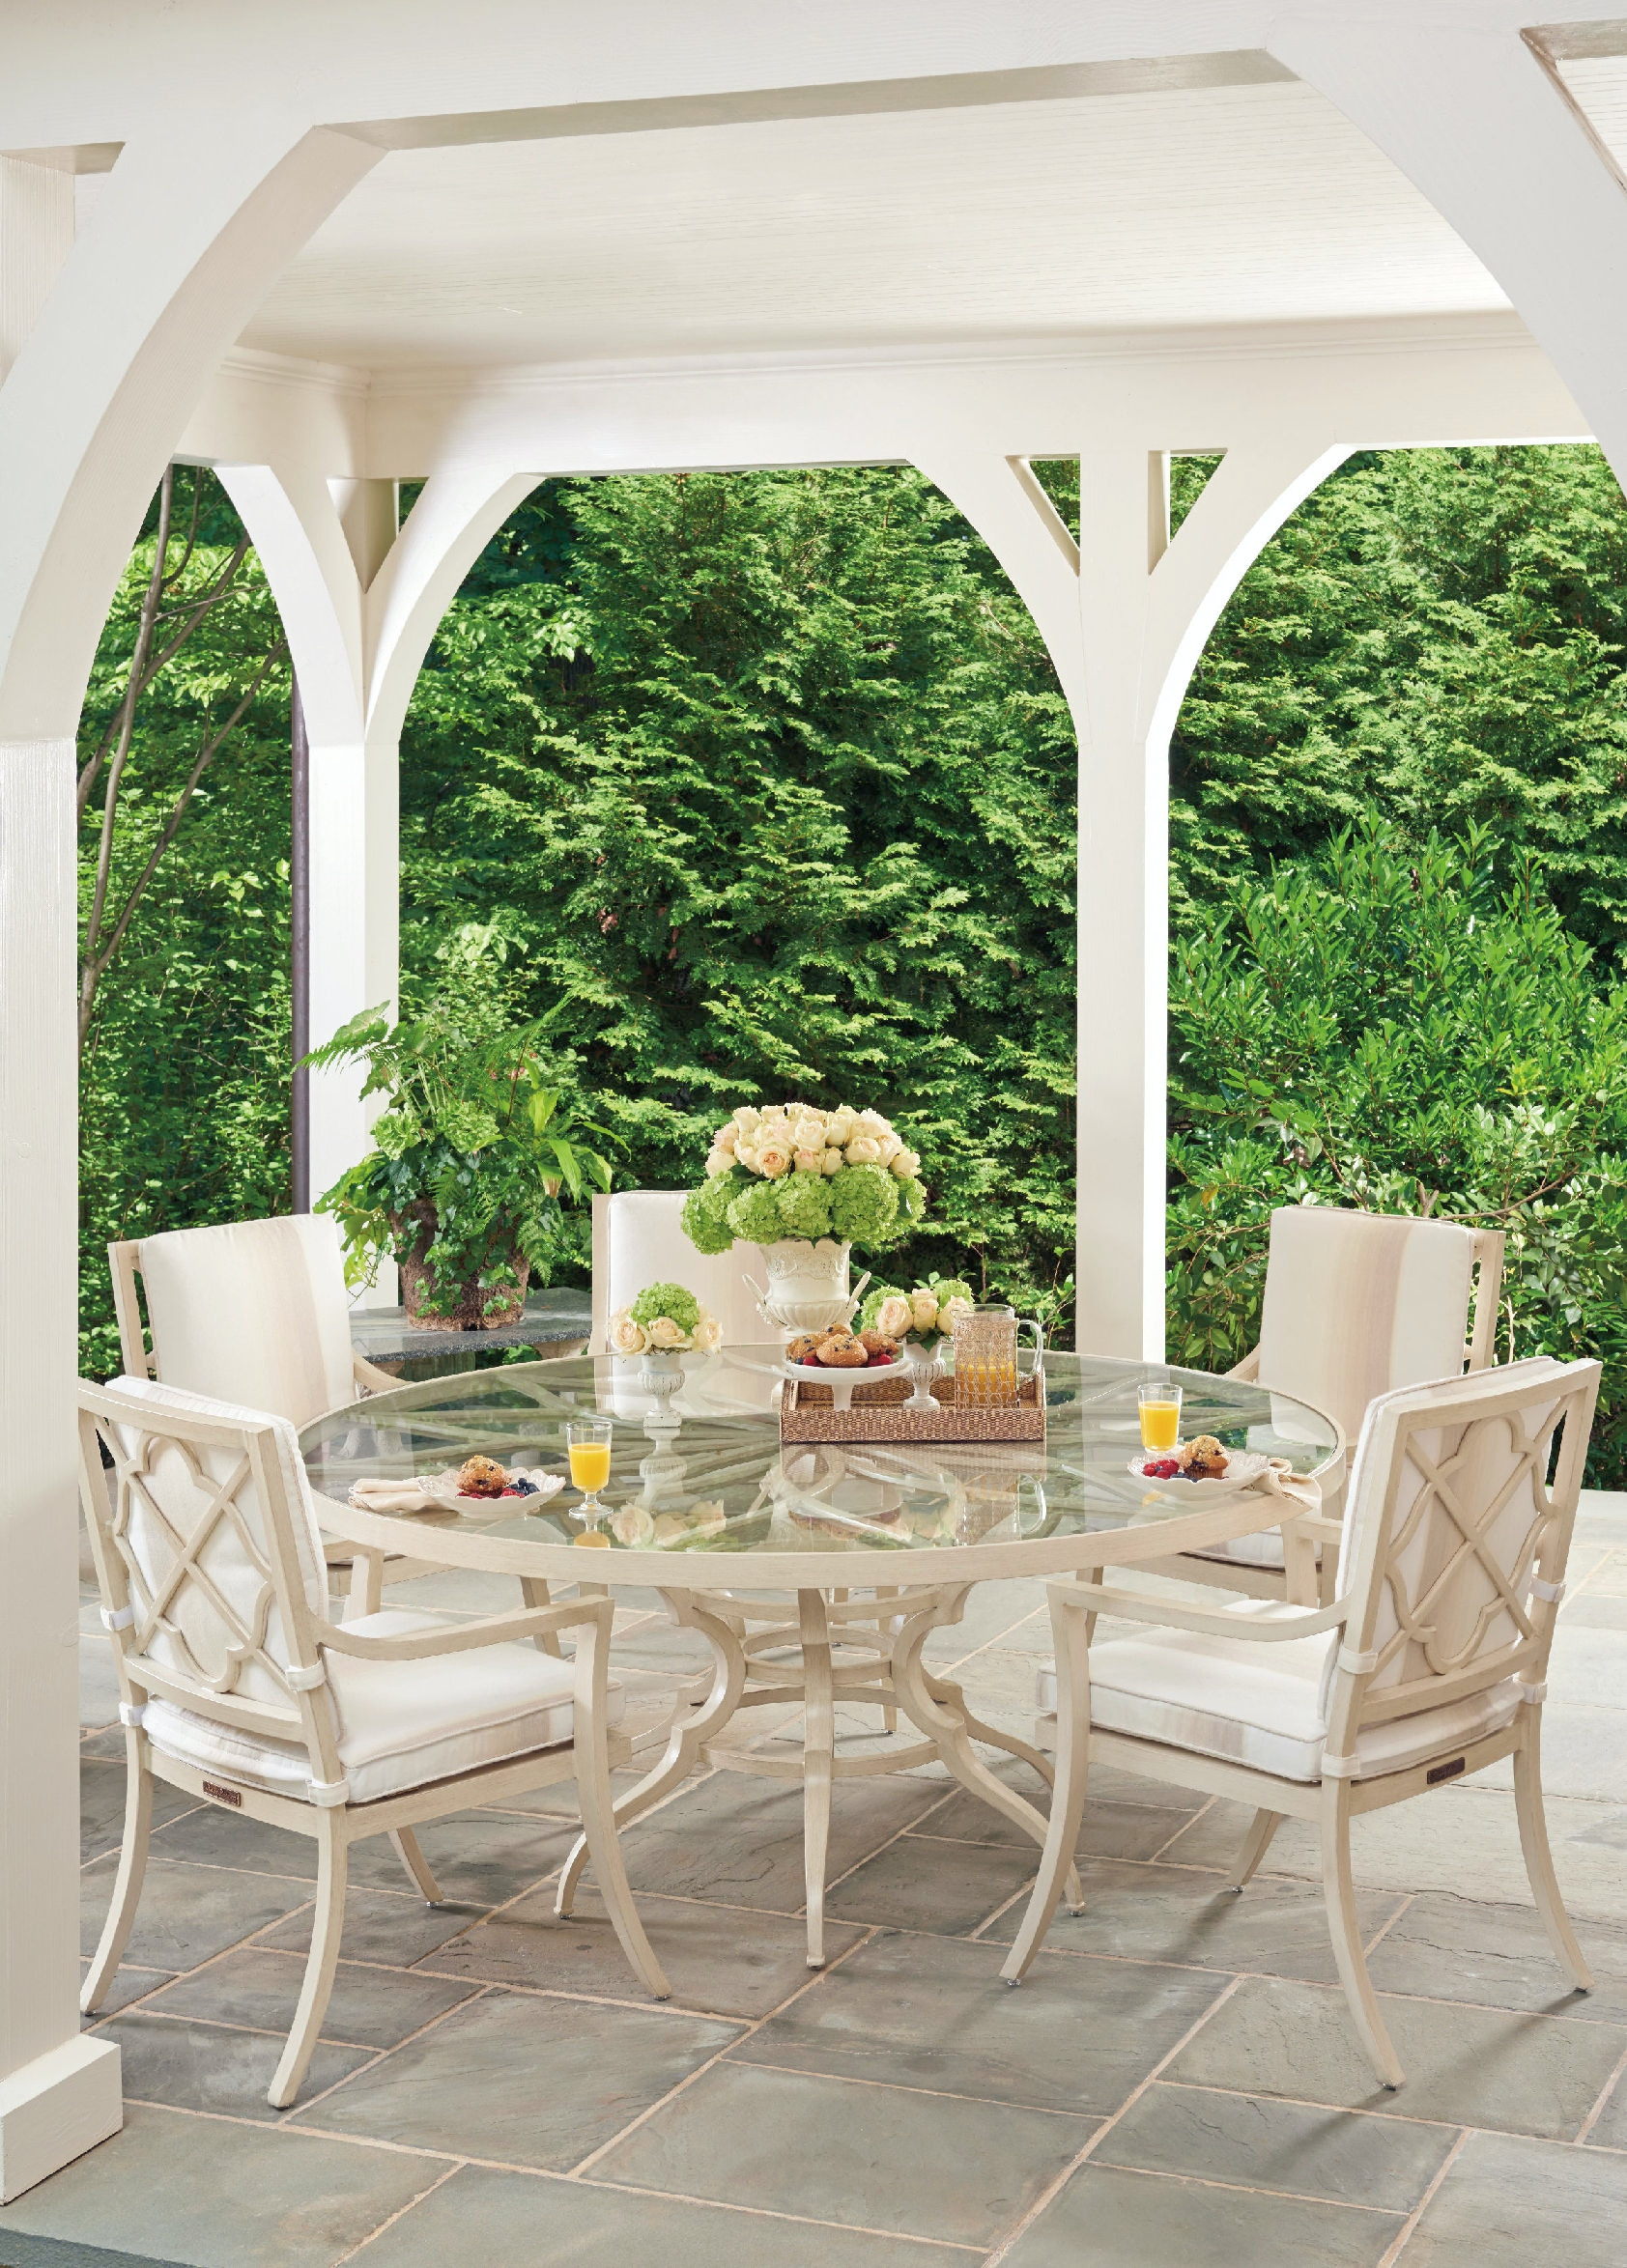 Tommy Bahama Outdoor Living   Round Dining Table Inset Glass ...